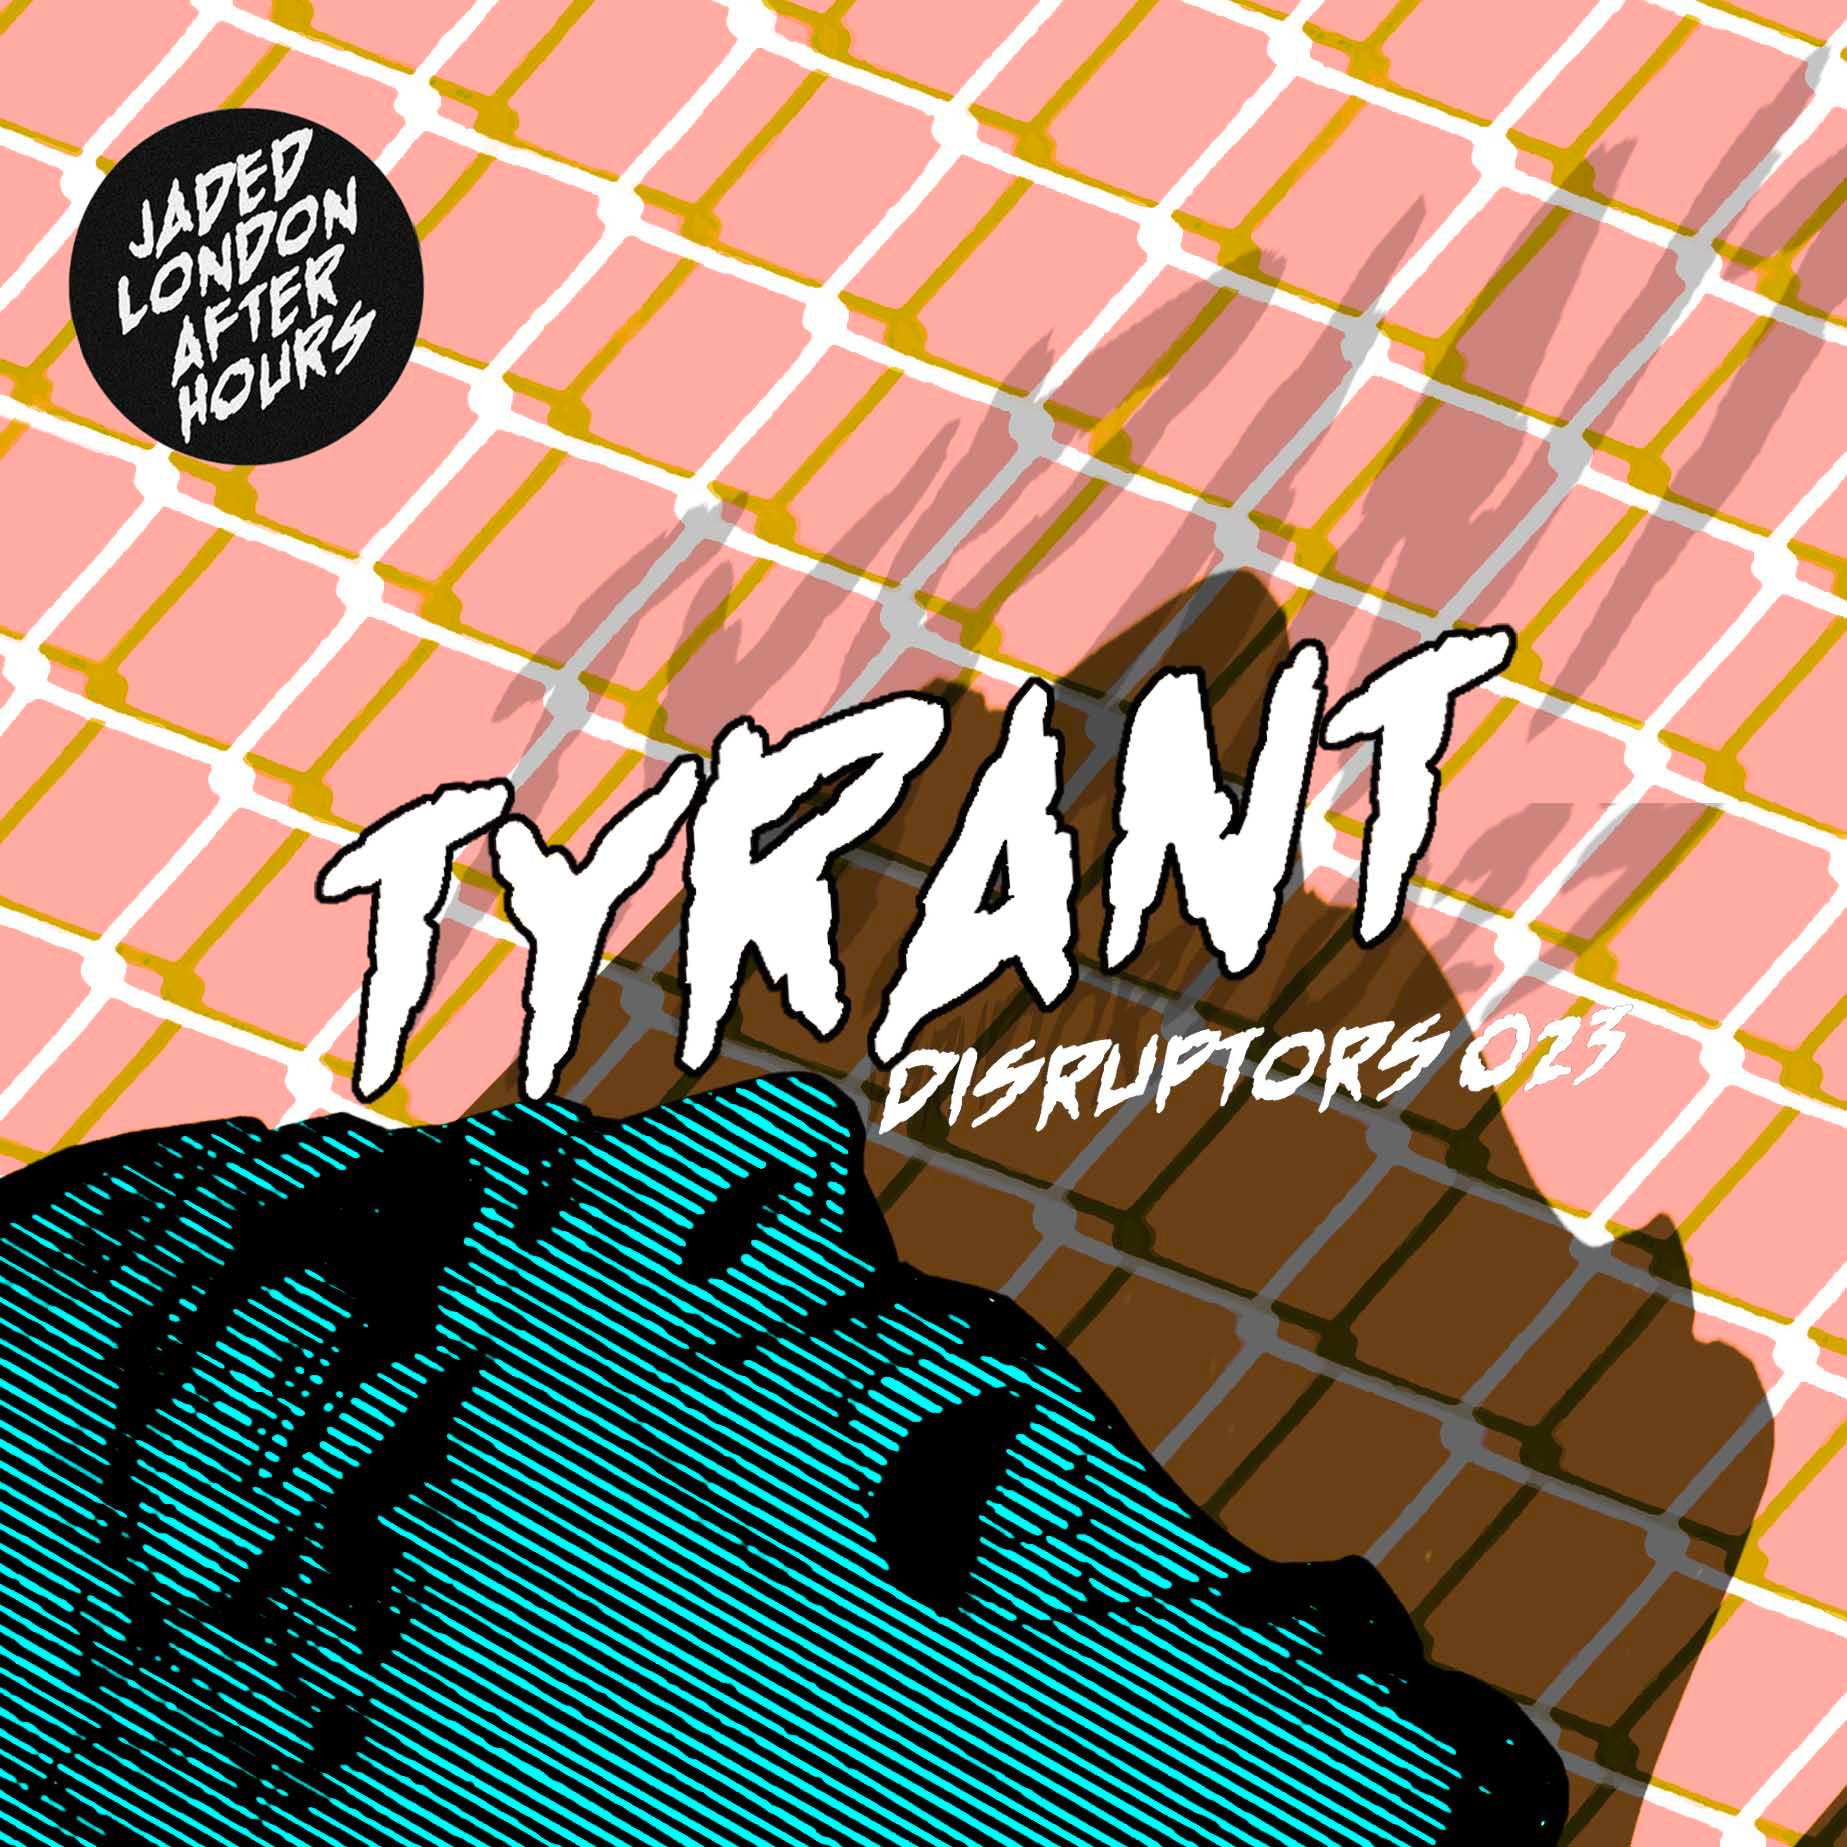 Disruptor 023 Tyrant Explodes Us Into 2020.